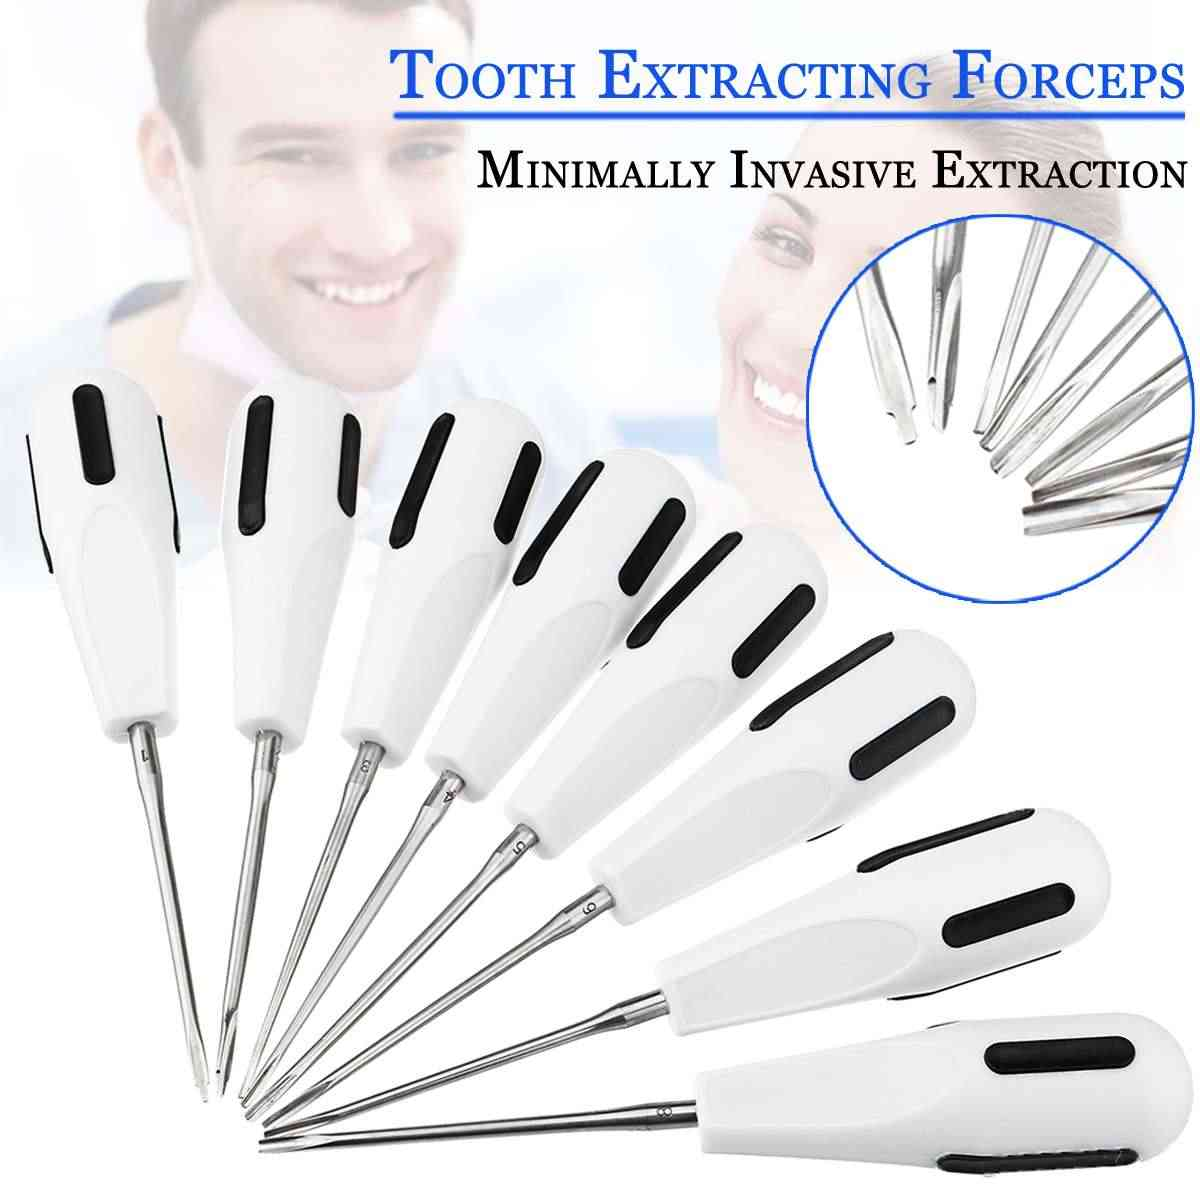 8Pcs/Set Stainless Steel Dental Luxating Lift Elevator Curved Root Elevator Dentistry Dentist Instrument Teeth Whitening Tool